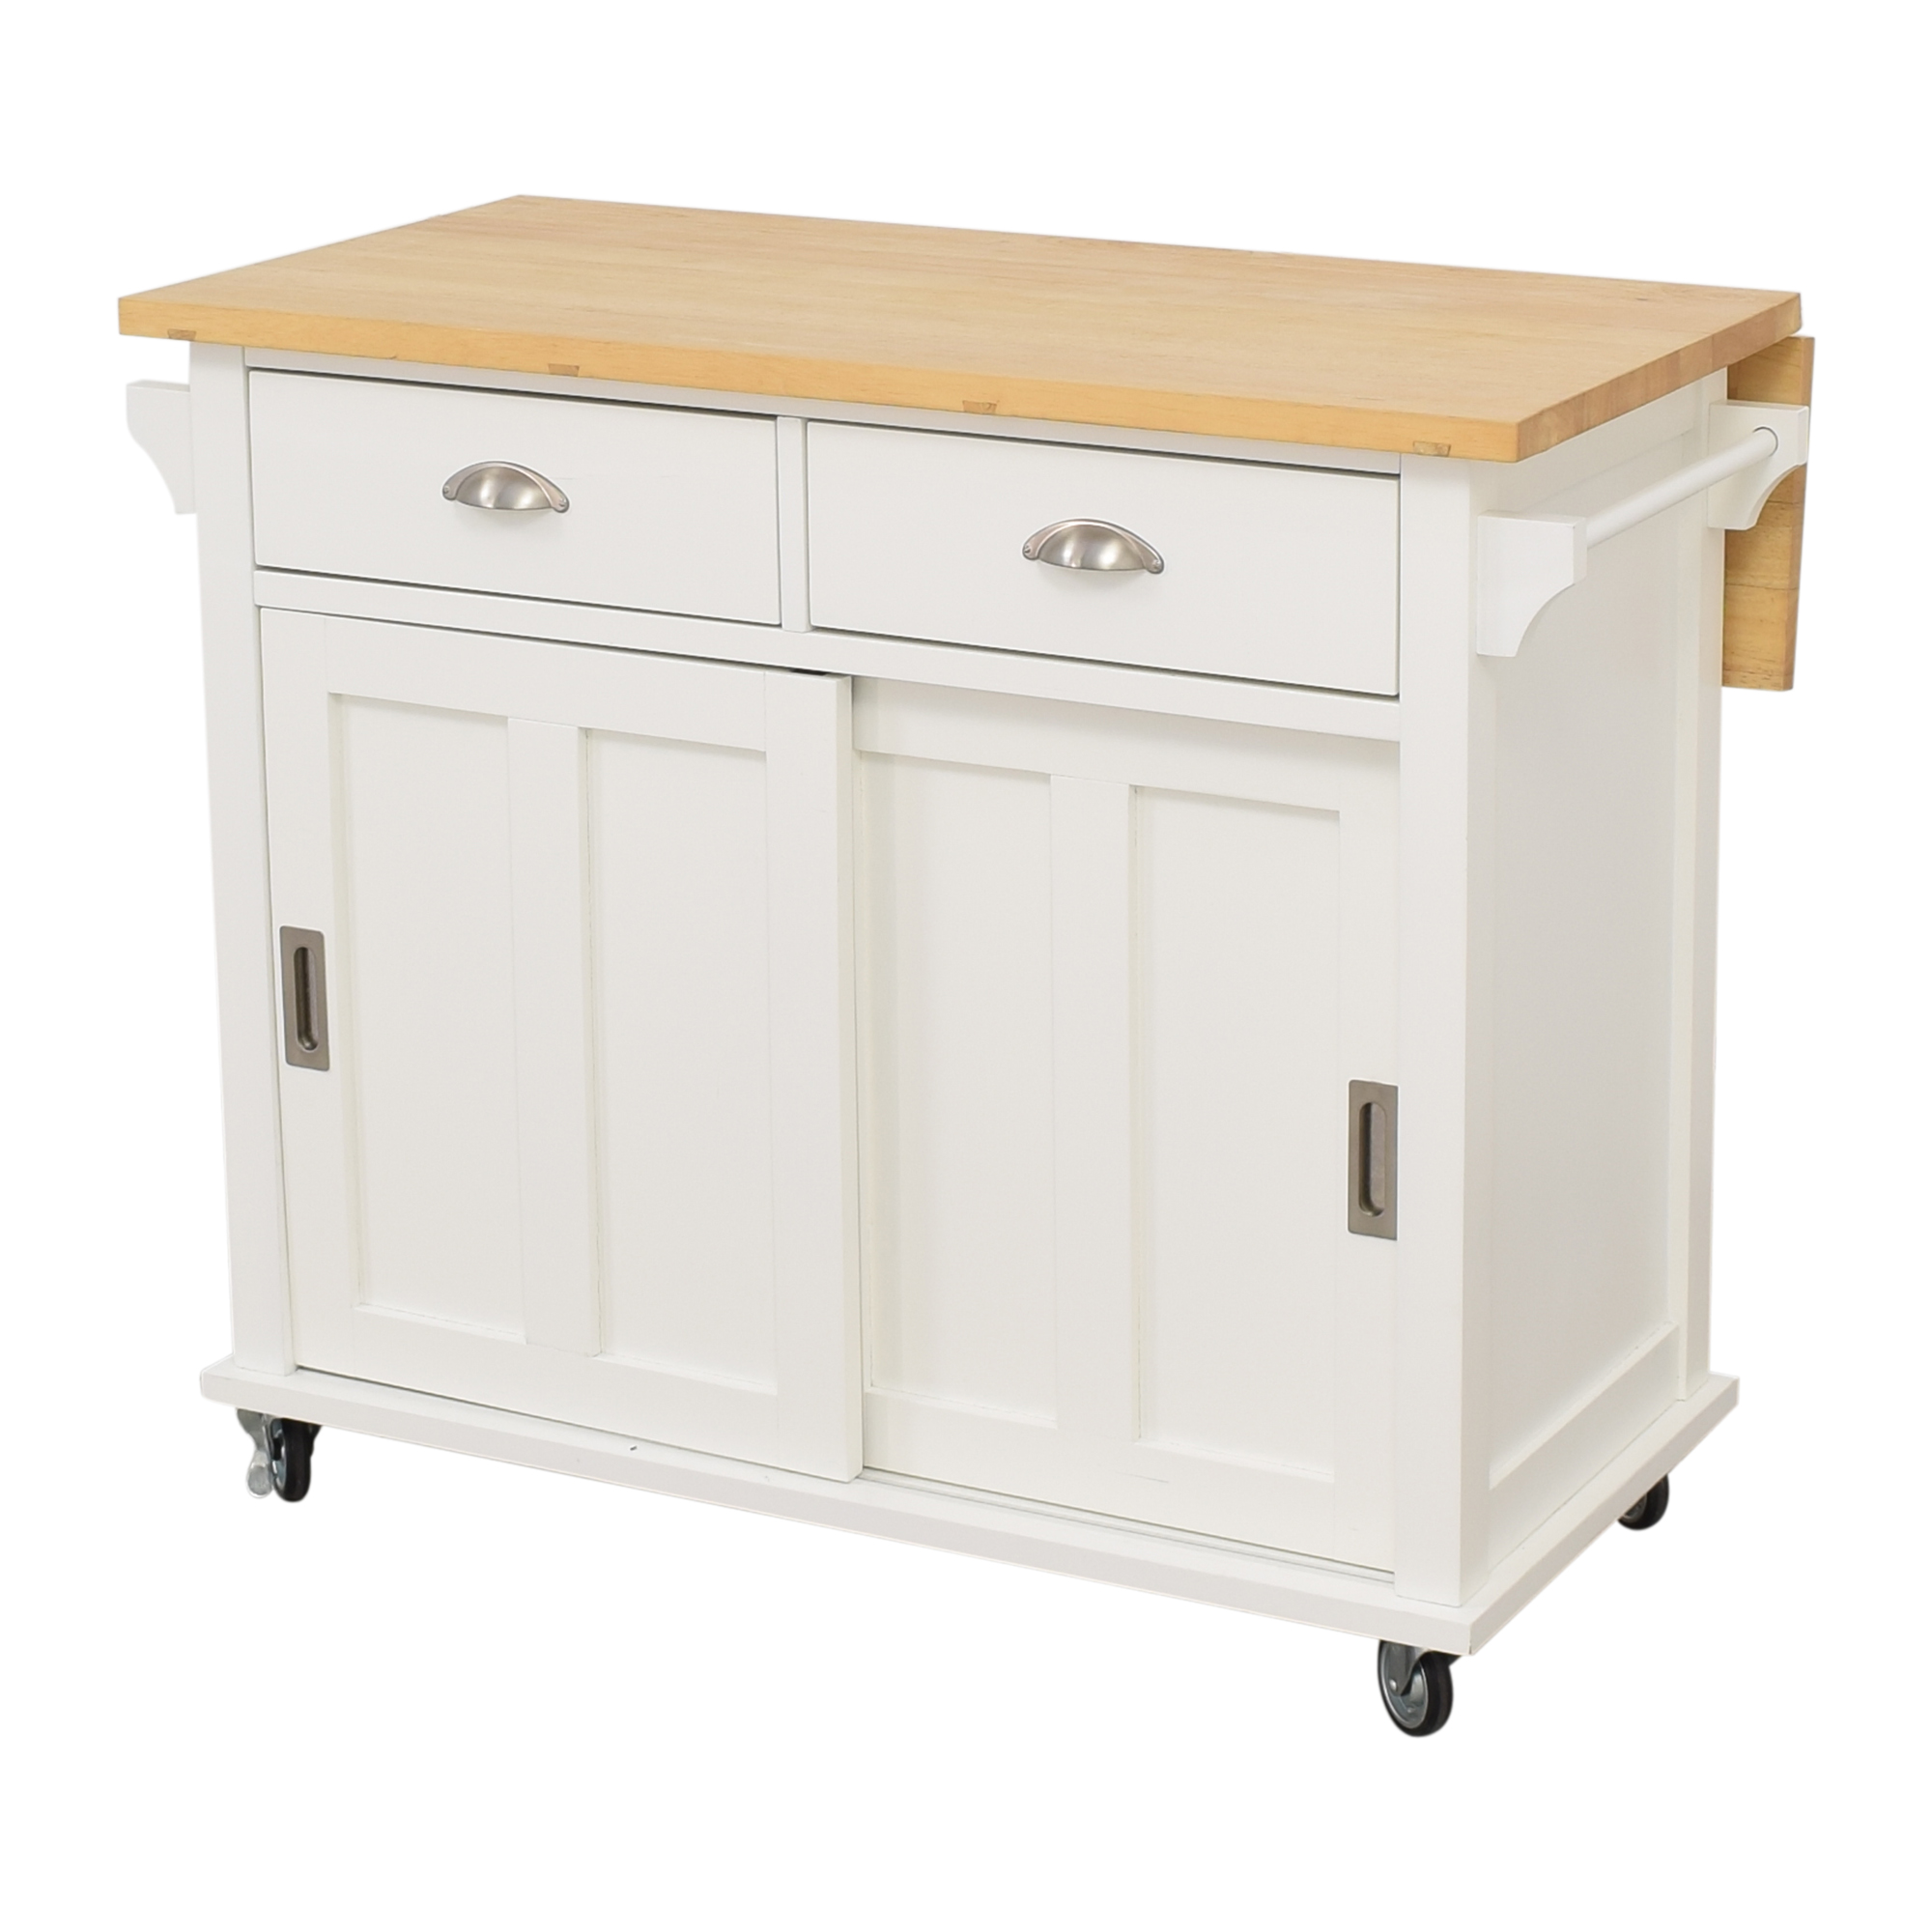 Crate & Barrel Crate & Barrel Belmont White Kitchen Island nyc